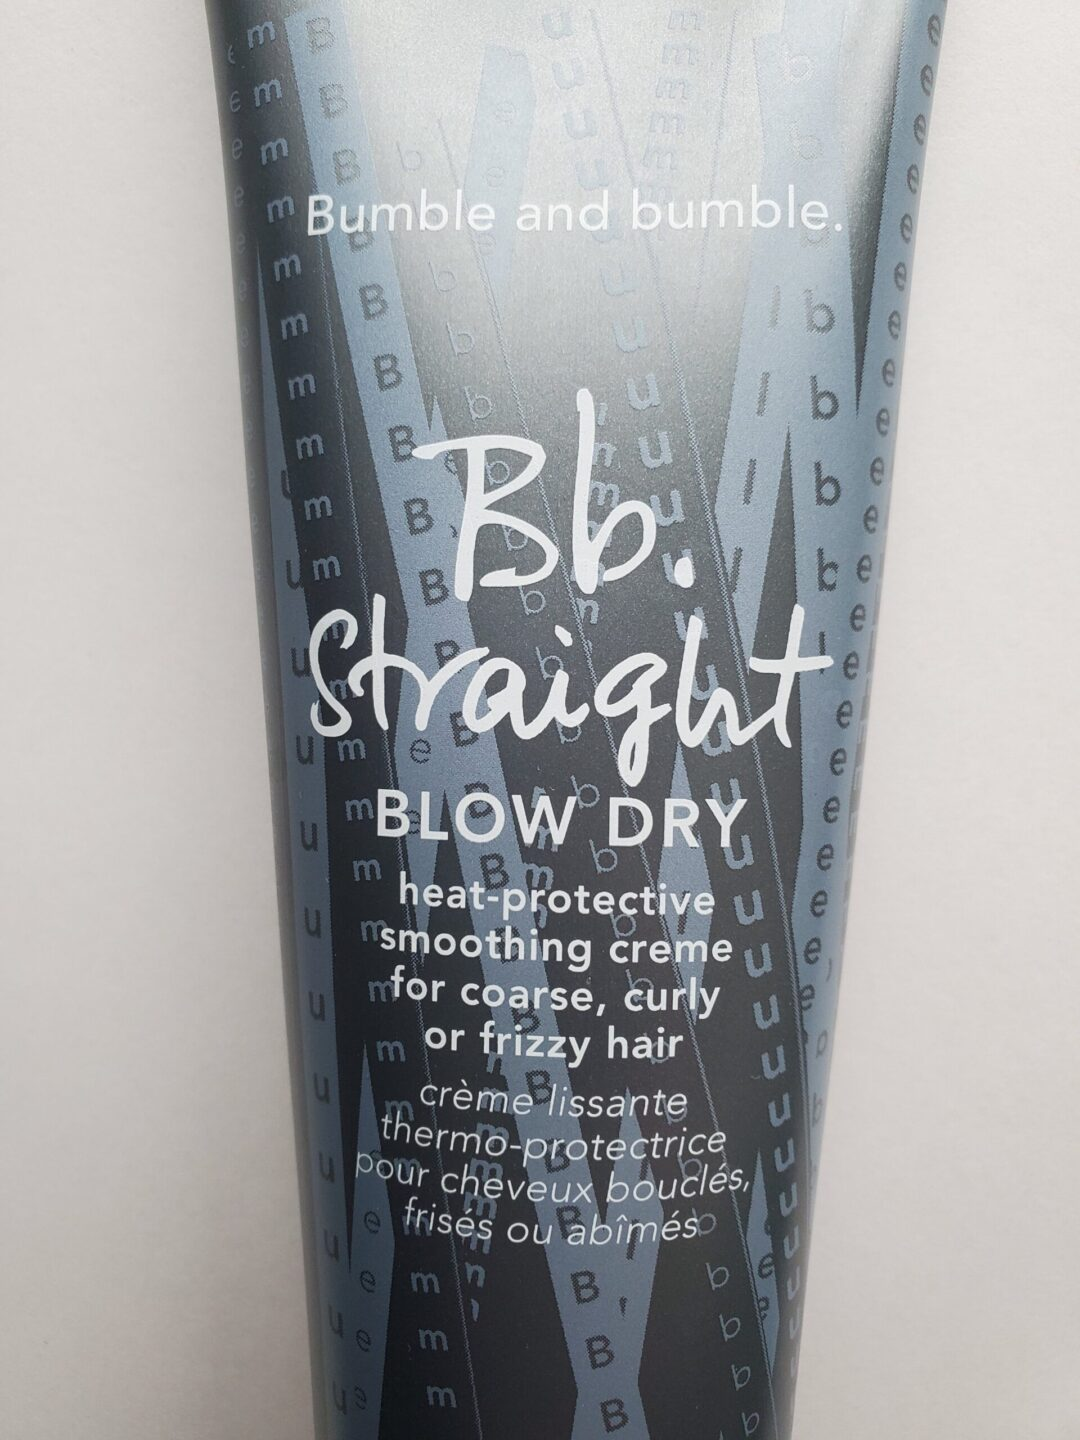 Bumble and Bumble's Straight Blow Dry Creme is Revolutionary